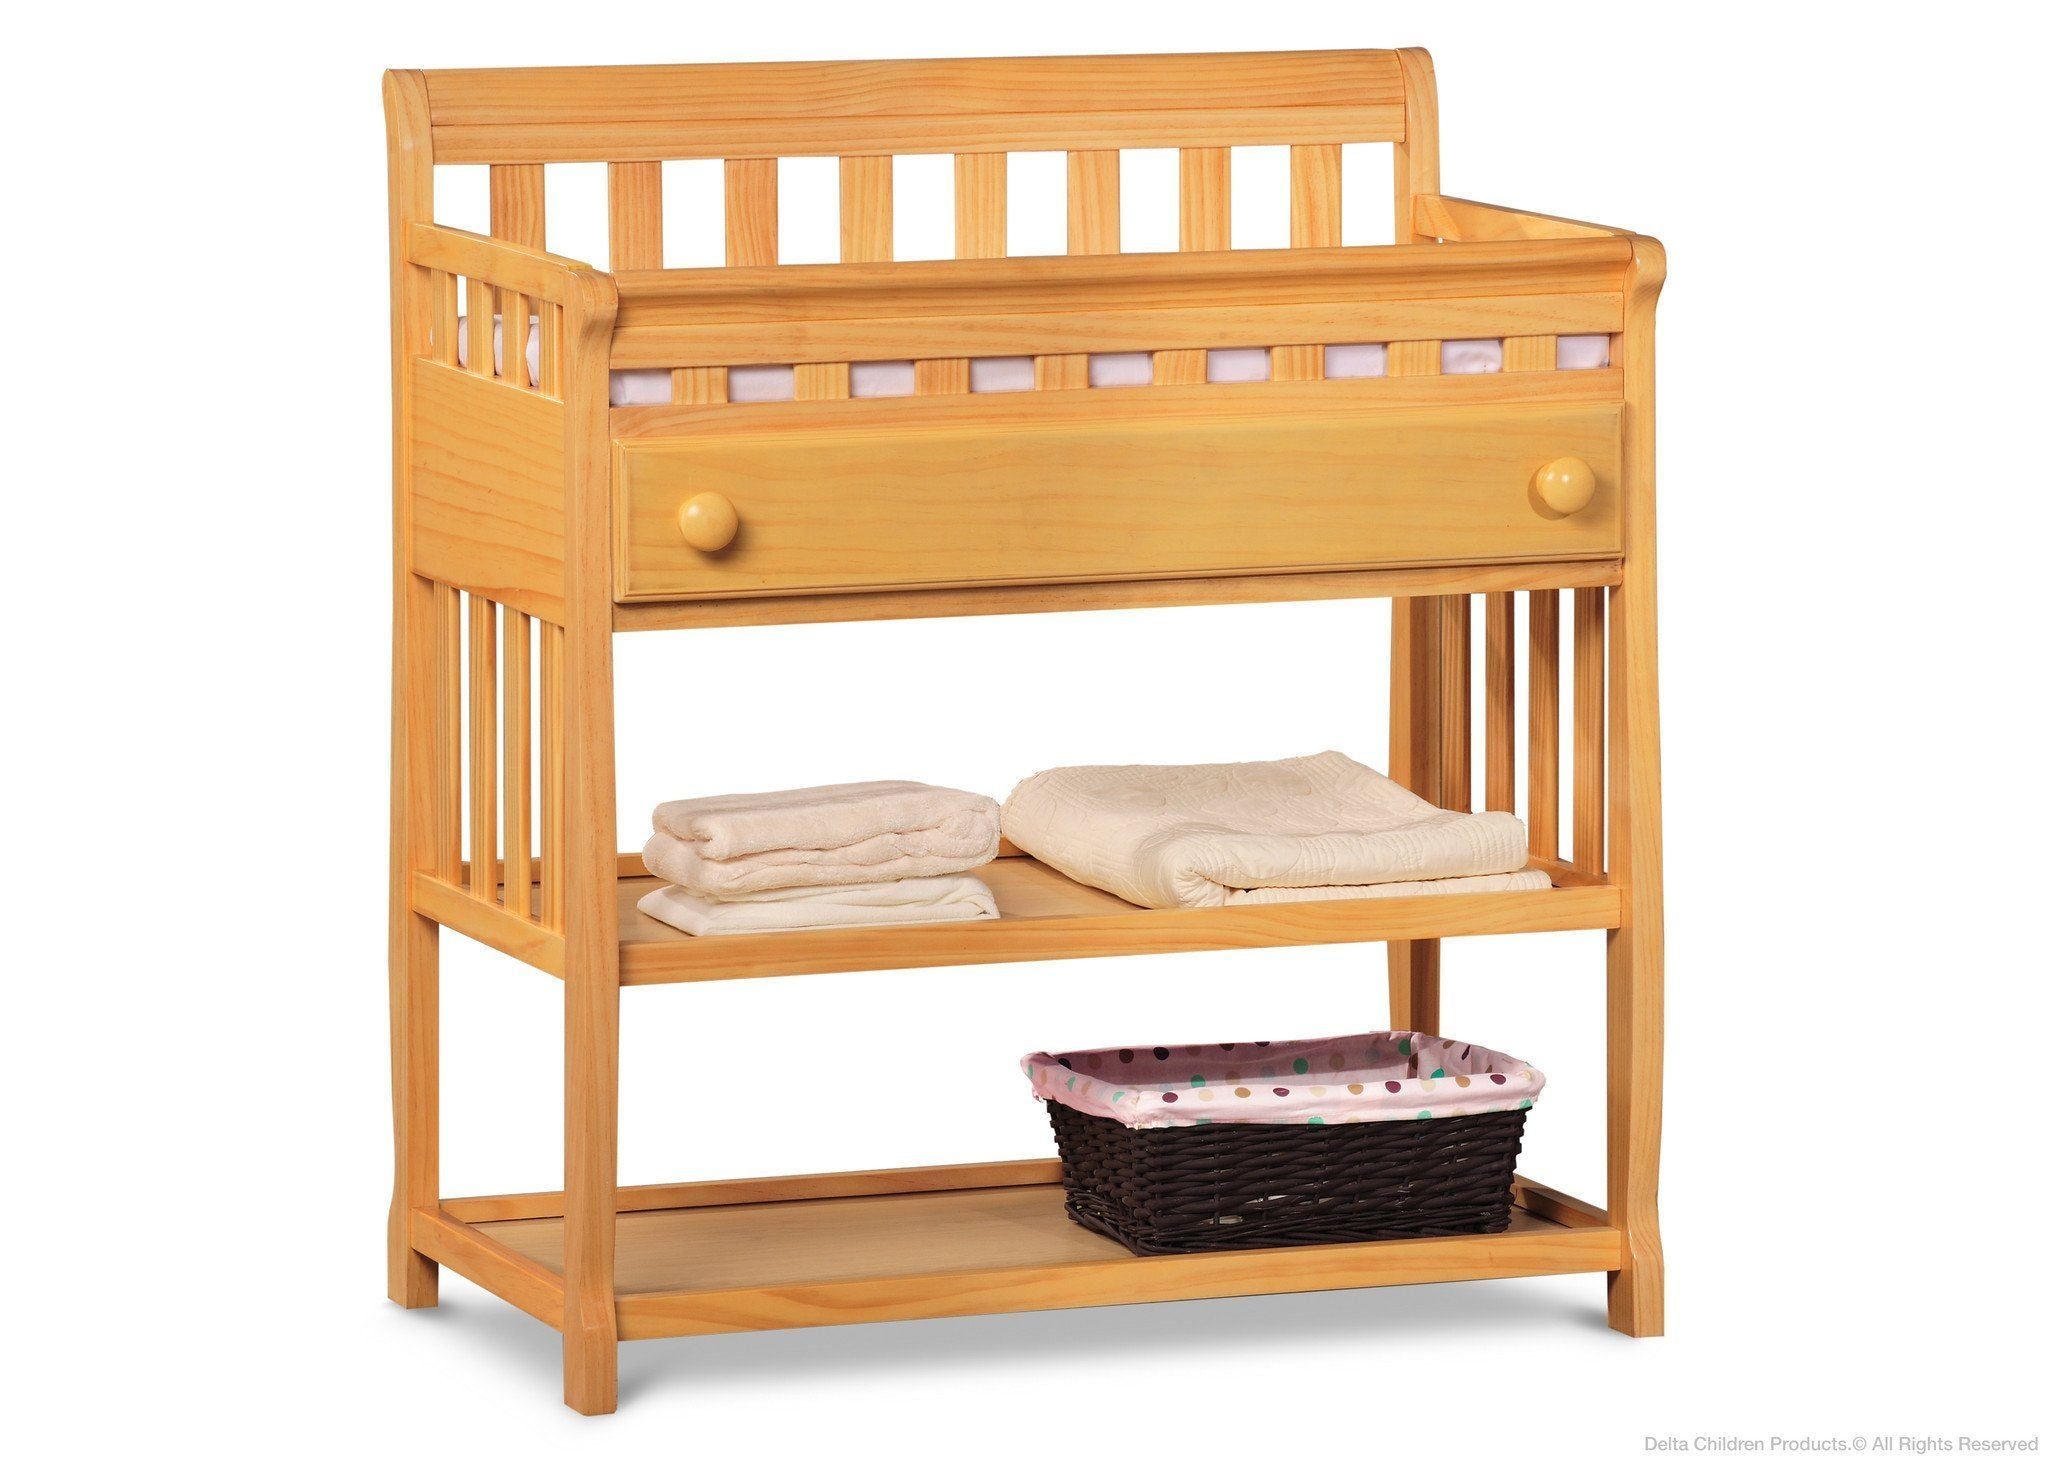 Gentil ... Delta Children Natural (260) Solutions Changing Table Side View With  Props B3b ...